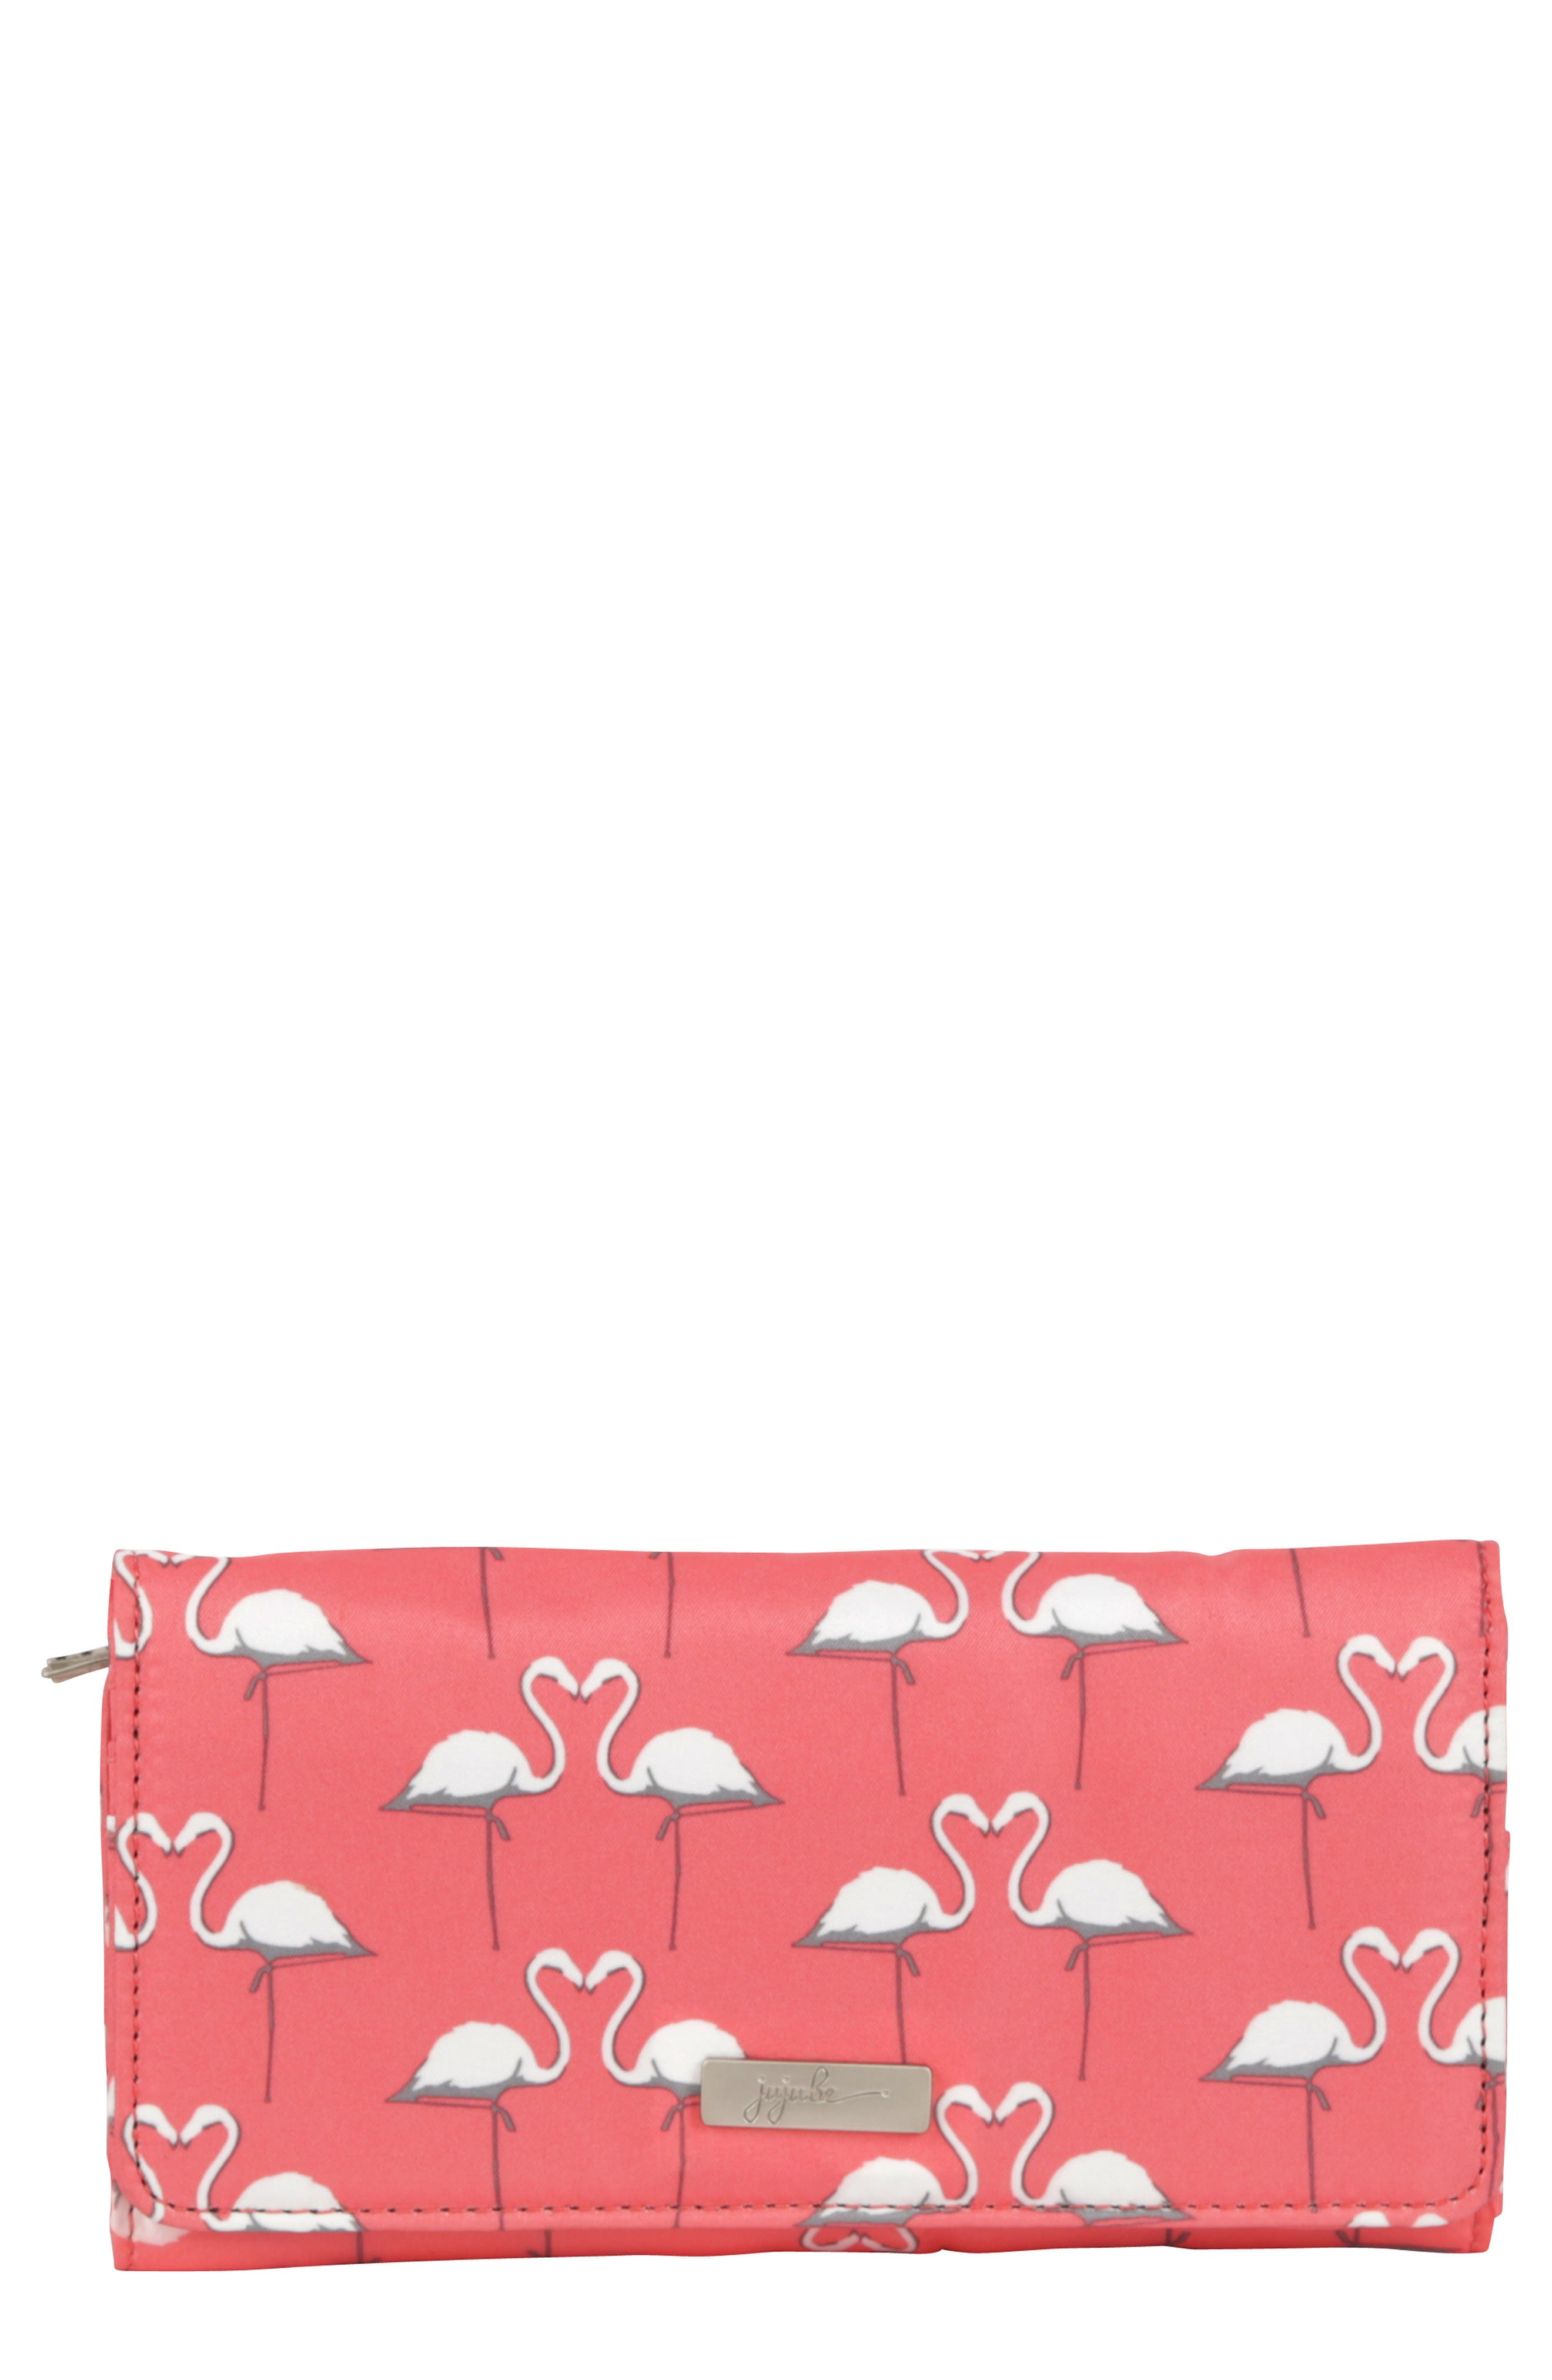 Be Rich - Coastal Collection Trifold Clutch Wallet,                             Main thumbnail 1, color,                             Key West